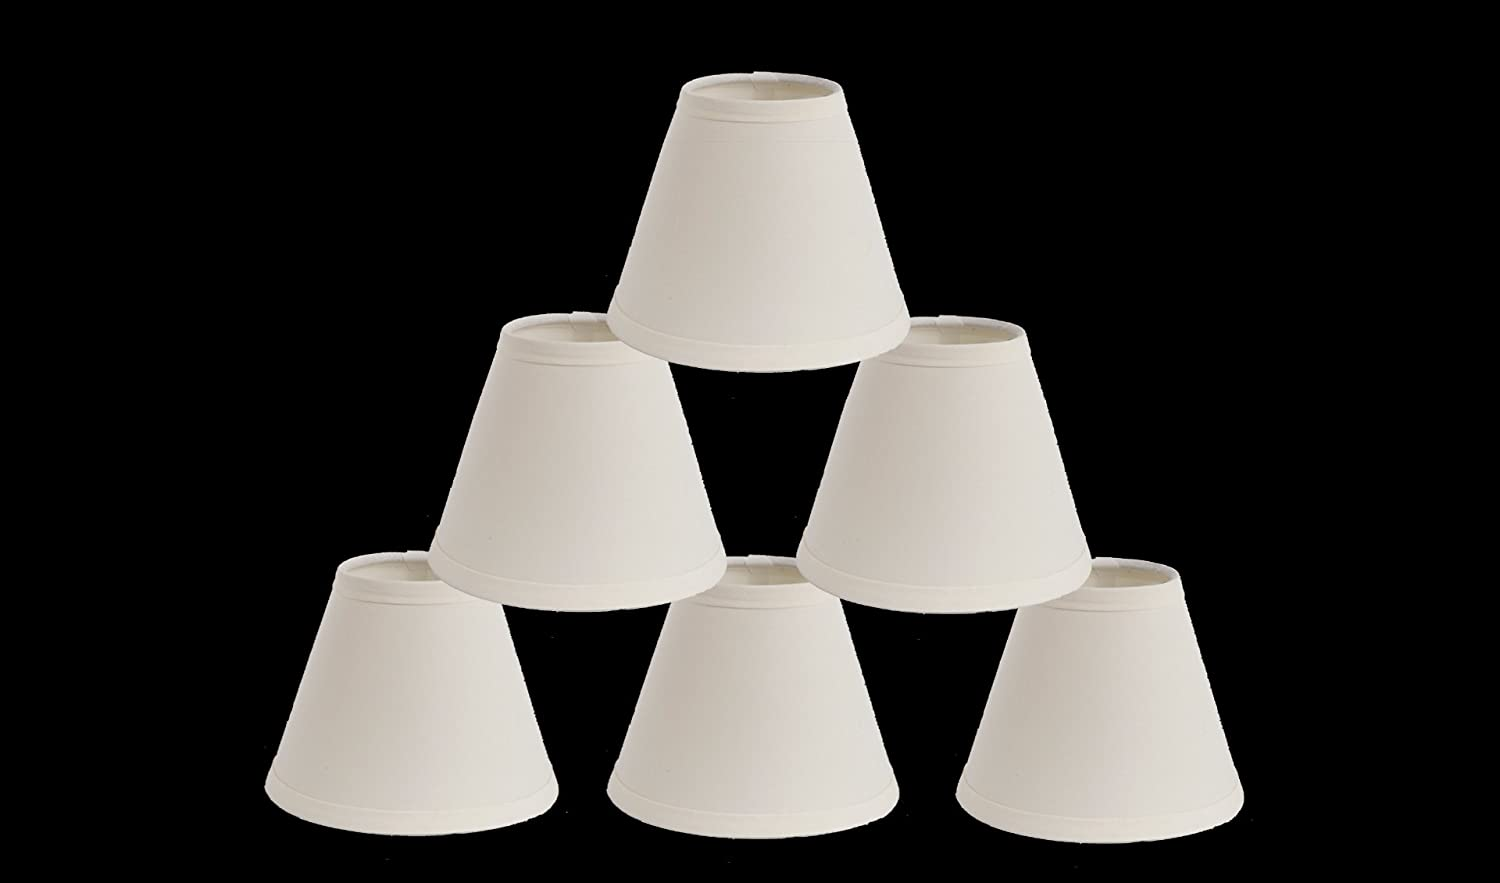 Captivating Urbanest 1100327c Mini Chandelier Lamp Shades 6 Inch, Cotton, Hardback,  Clip On, Eggshell (Set Of 6)     Amazon.com